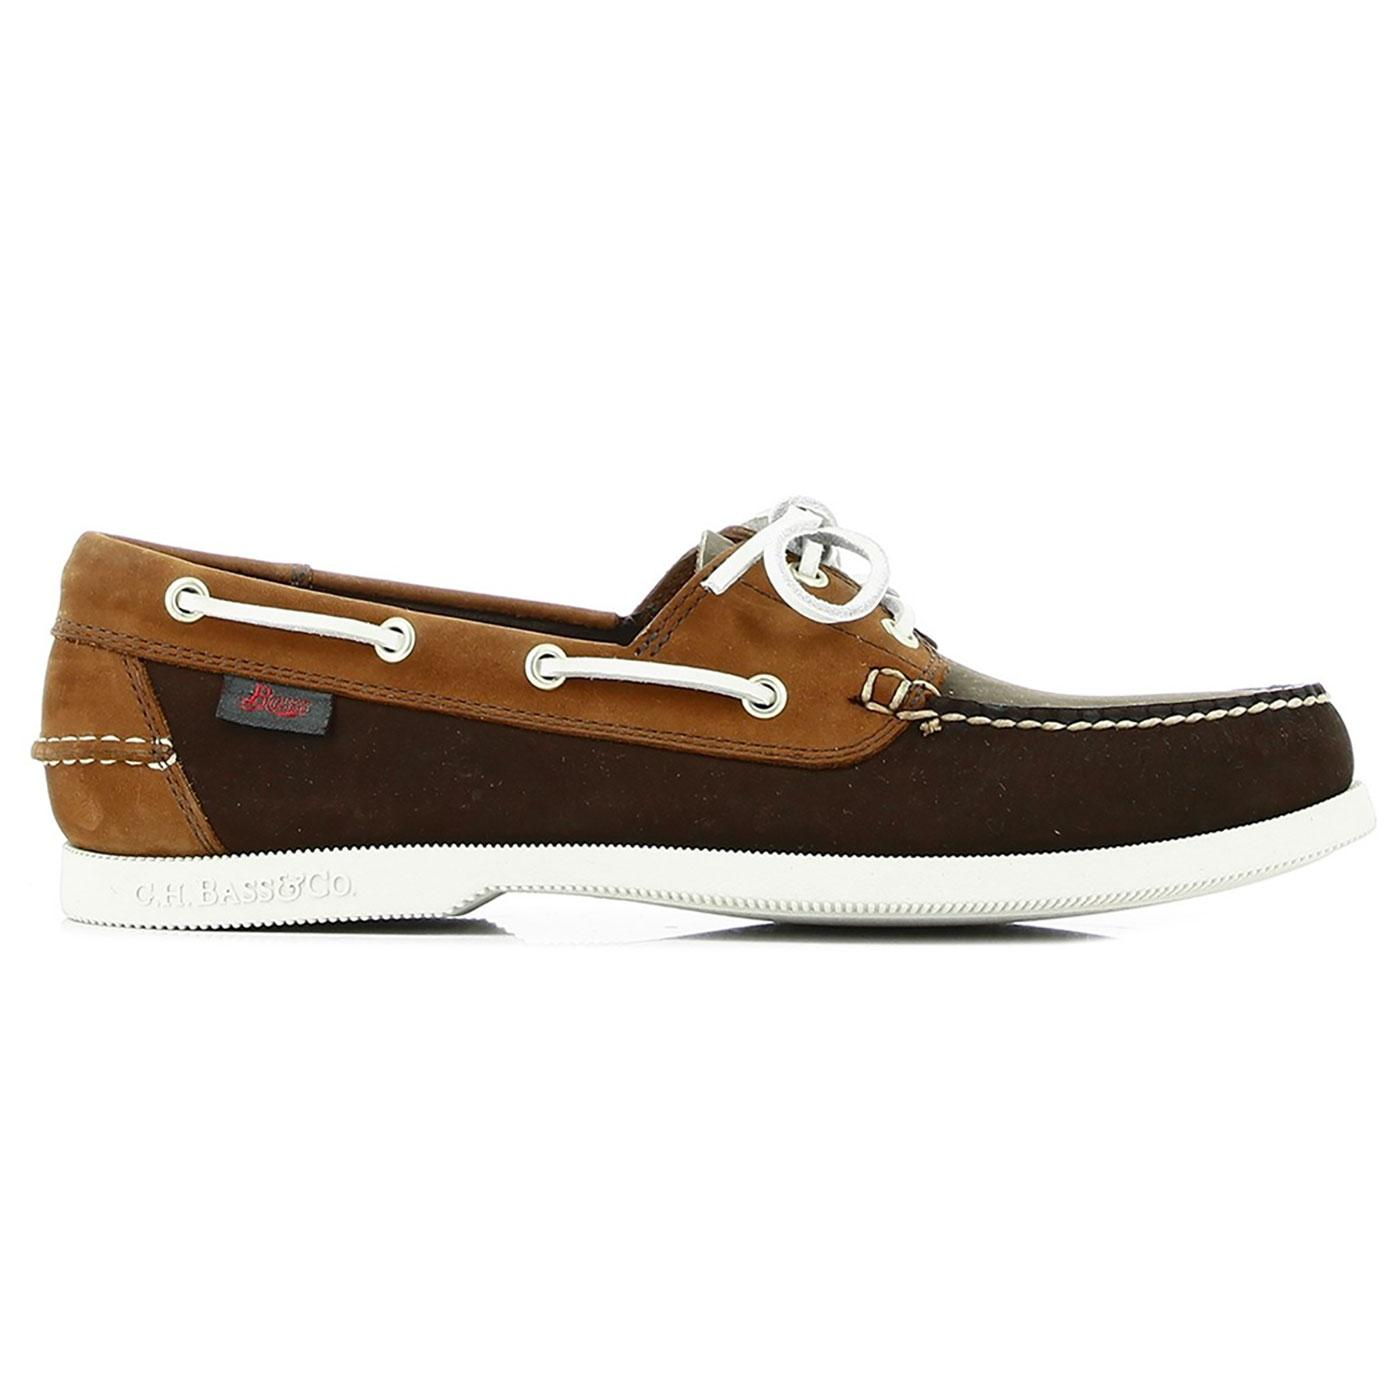 Jetty II BASS WEEJUNS Mod Boat Shoes (Mid Brown)